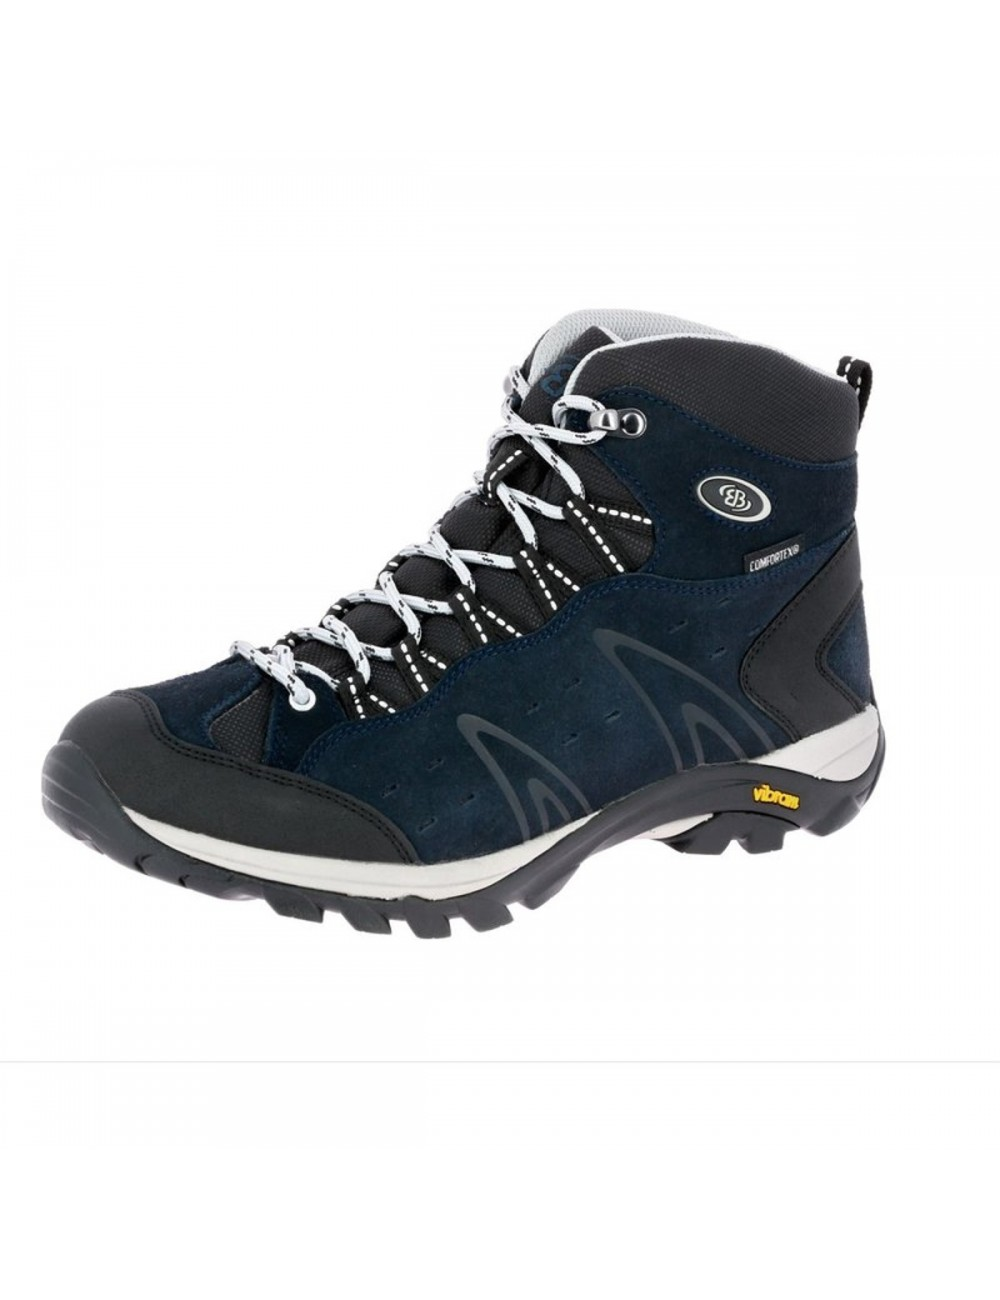 Brütting, hiking shoes, Mount Bona, a High - Navy Blue